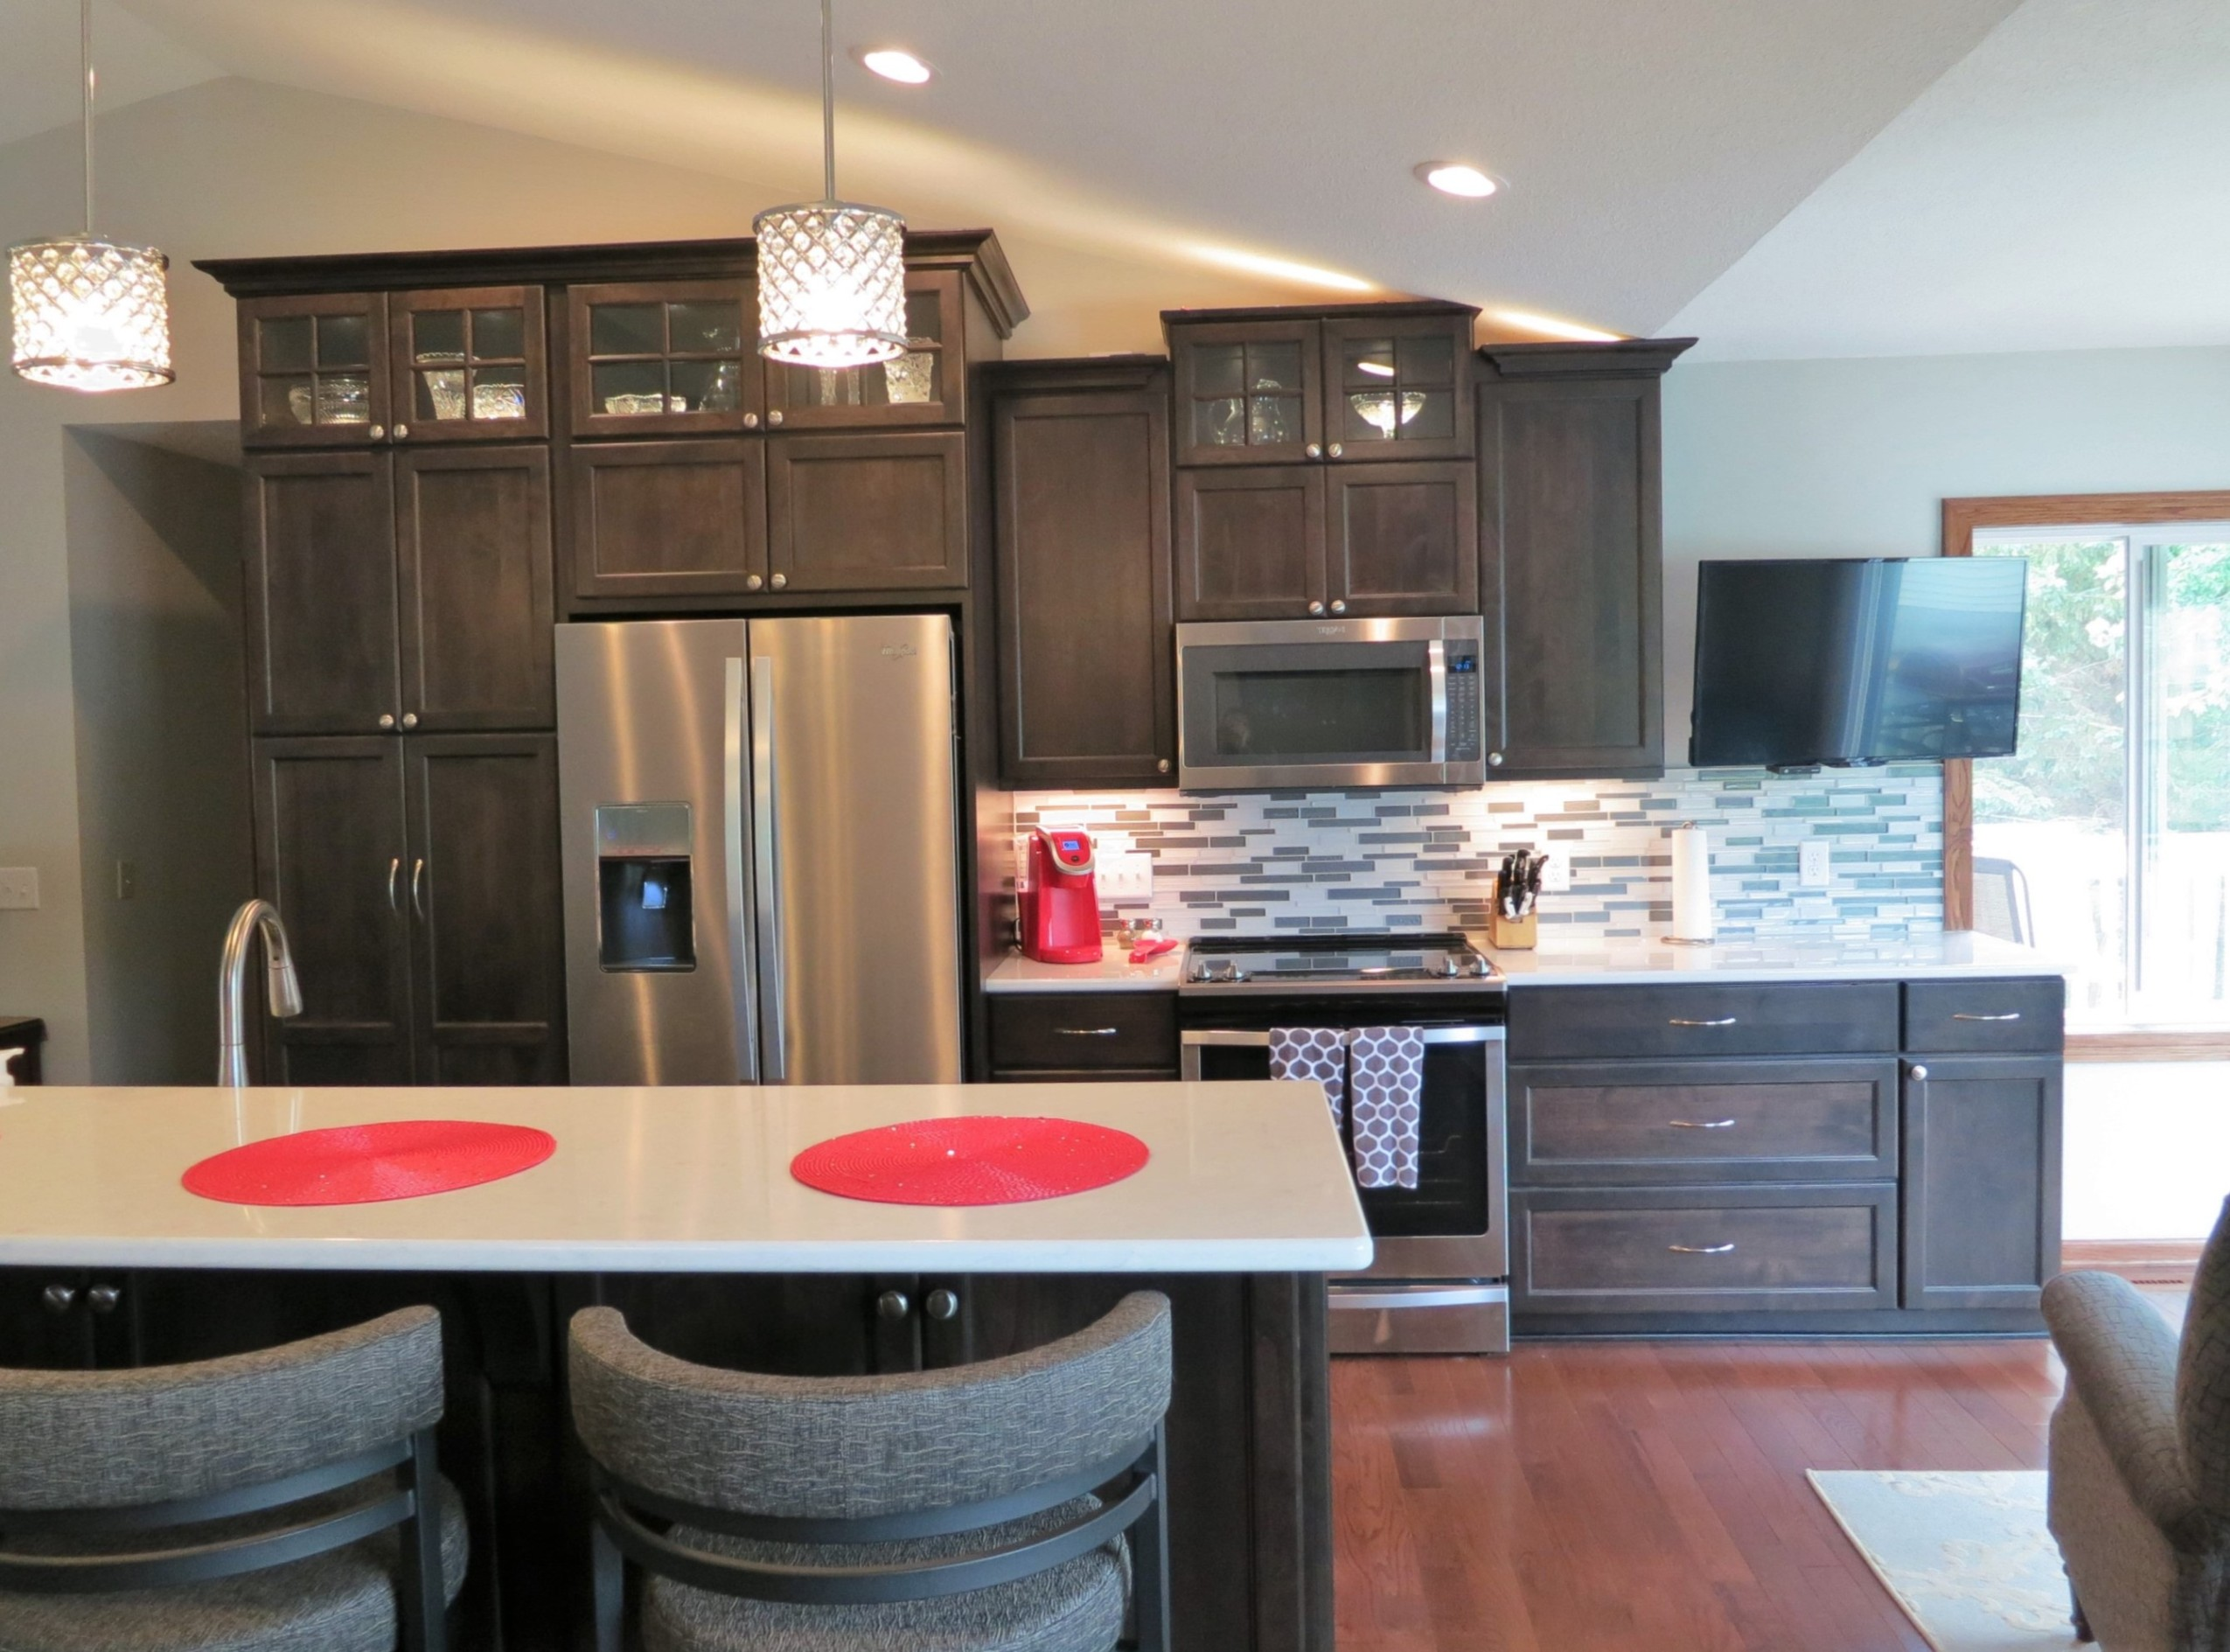 Woodbury Kitchen Redesign (16)